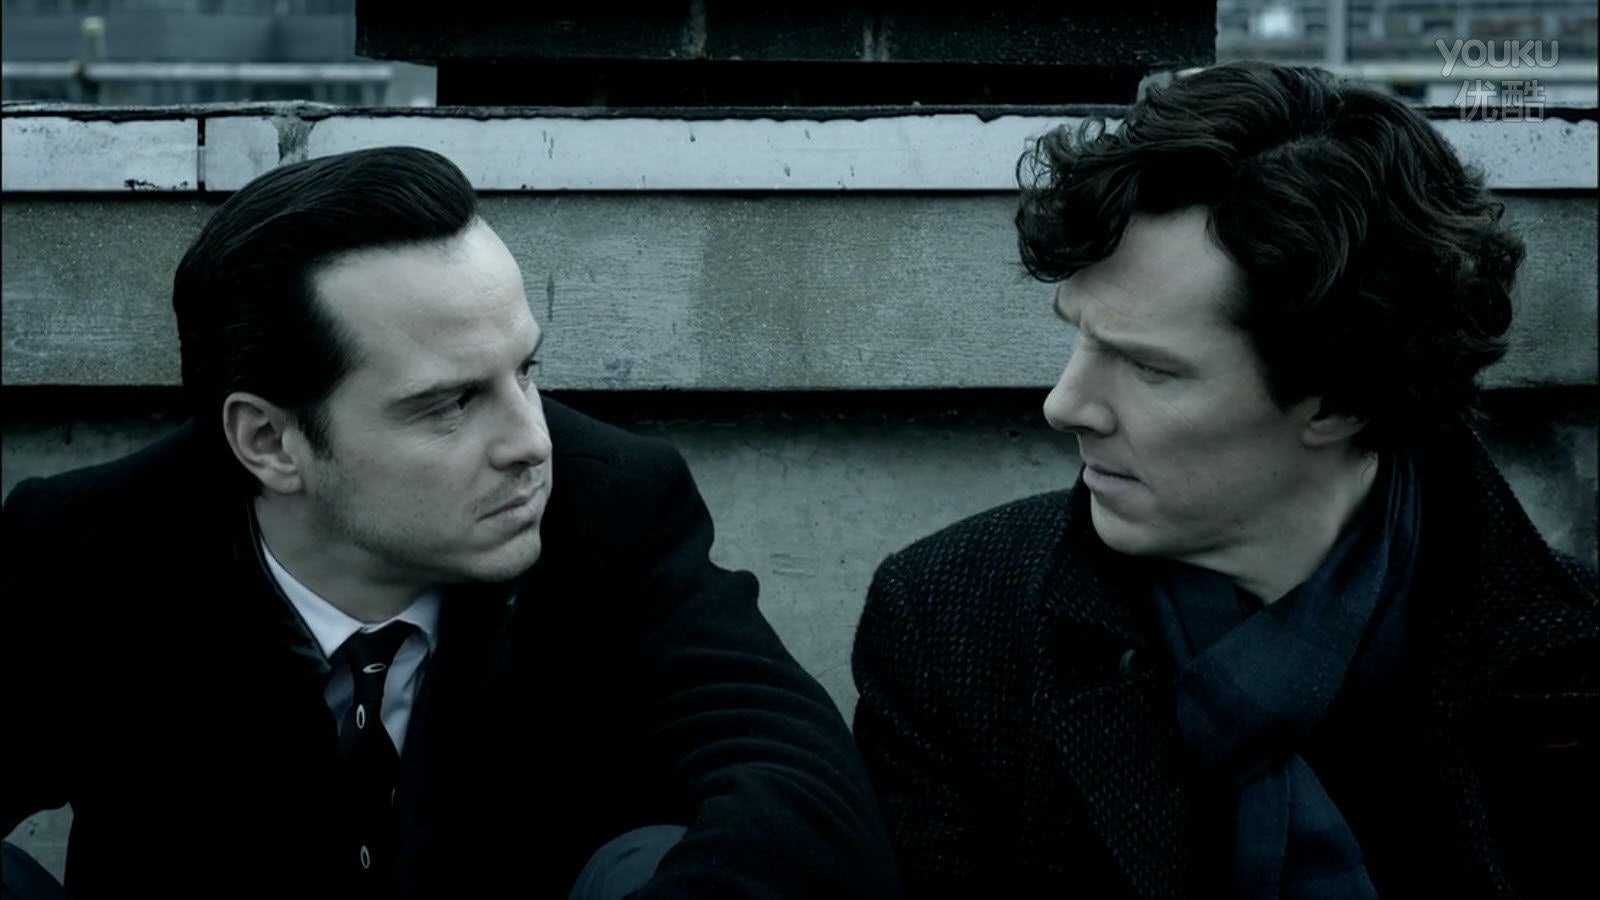 sherlock season 4 spoilers might promise an epic conclusion to the